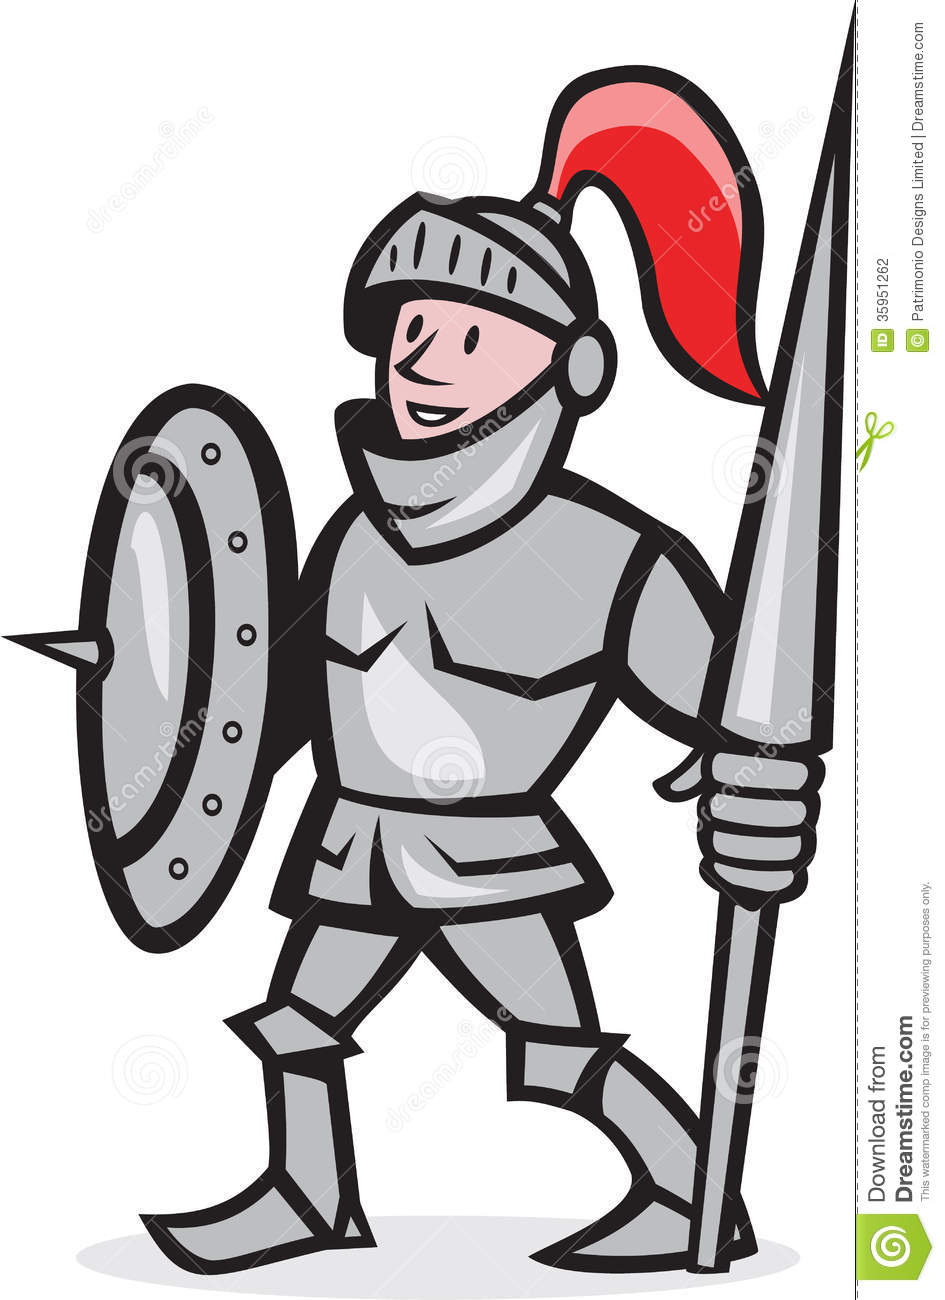 Knight clipart #20, Download drawings